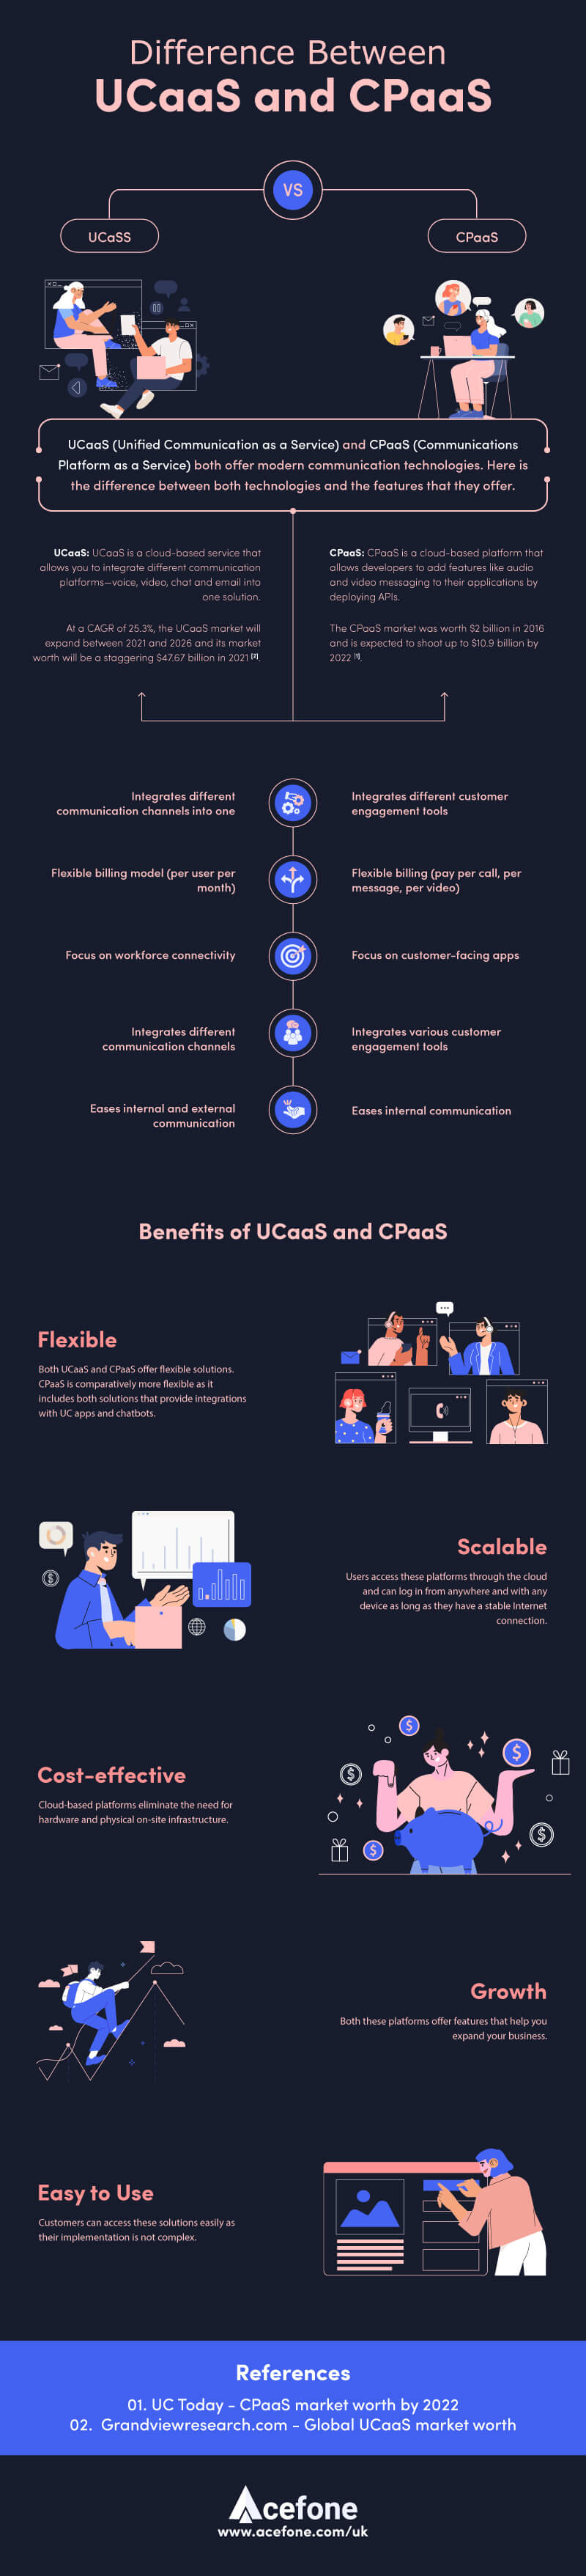 Differences Between UCaaS and CPaaS